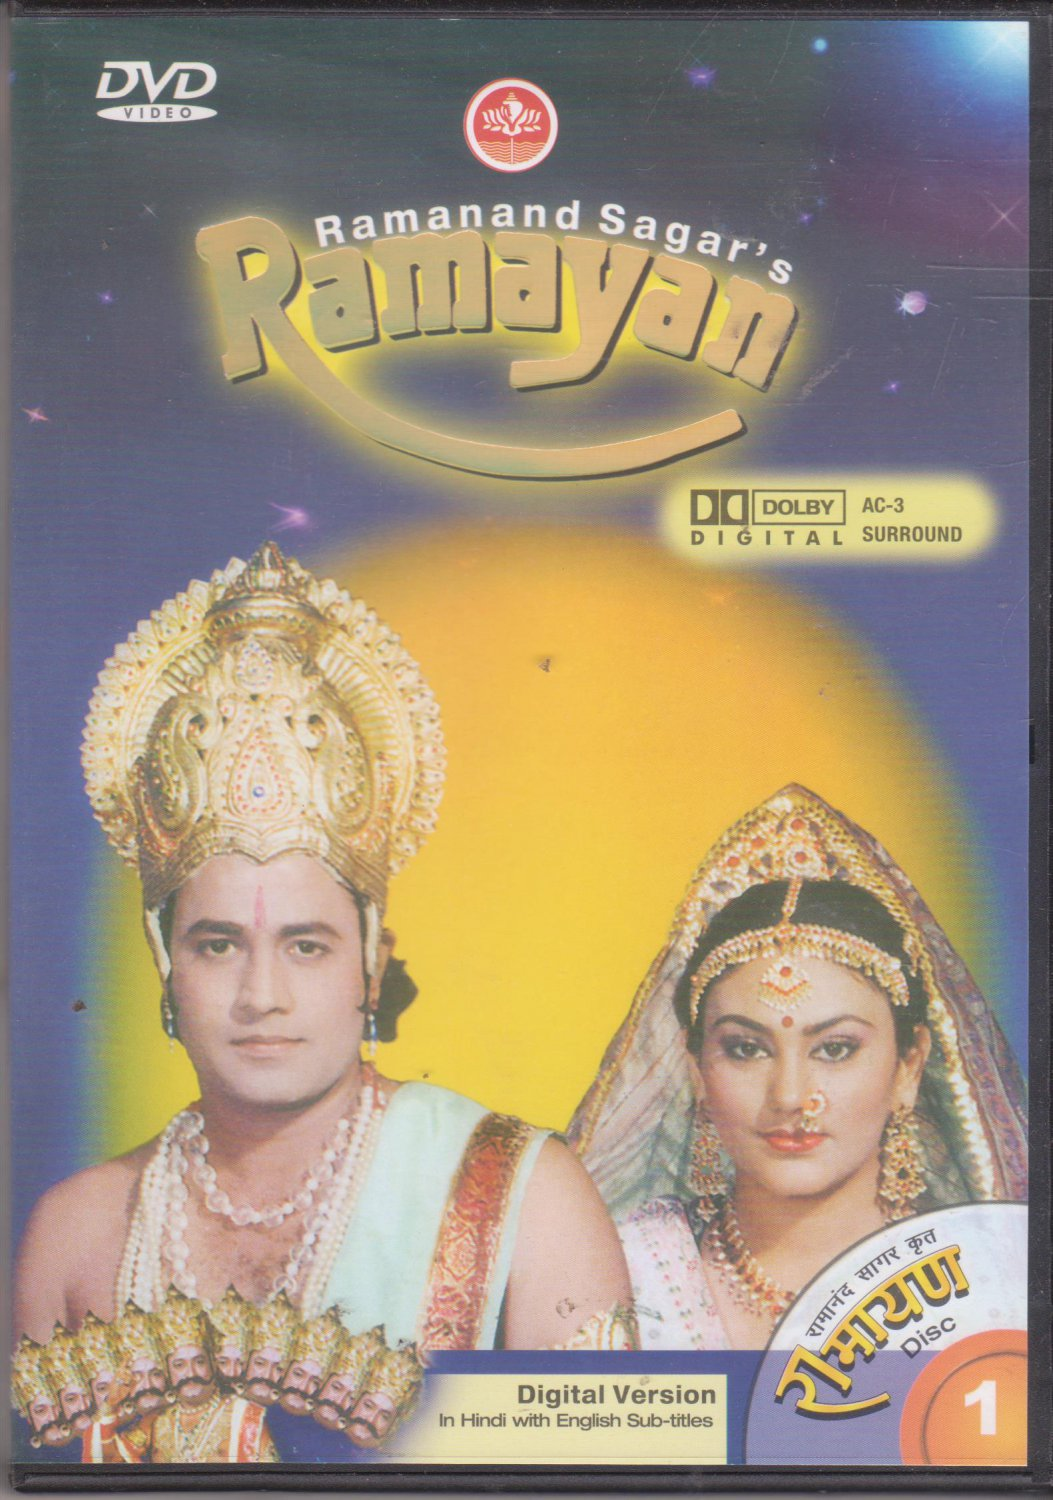 Ramayan - Disc 1 - Episode 1 to 3 - ramanand Sahar's  [Dvd]  1st edition Released